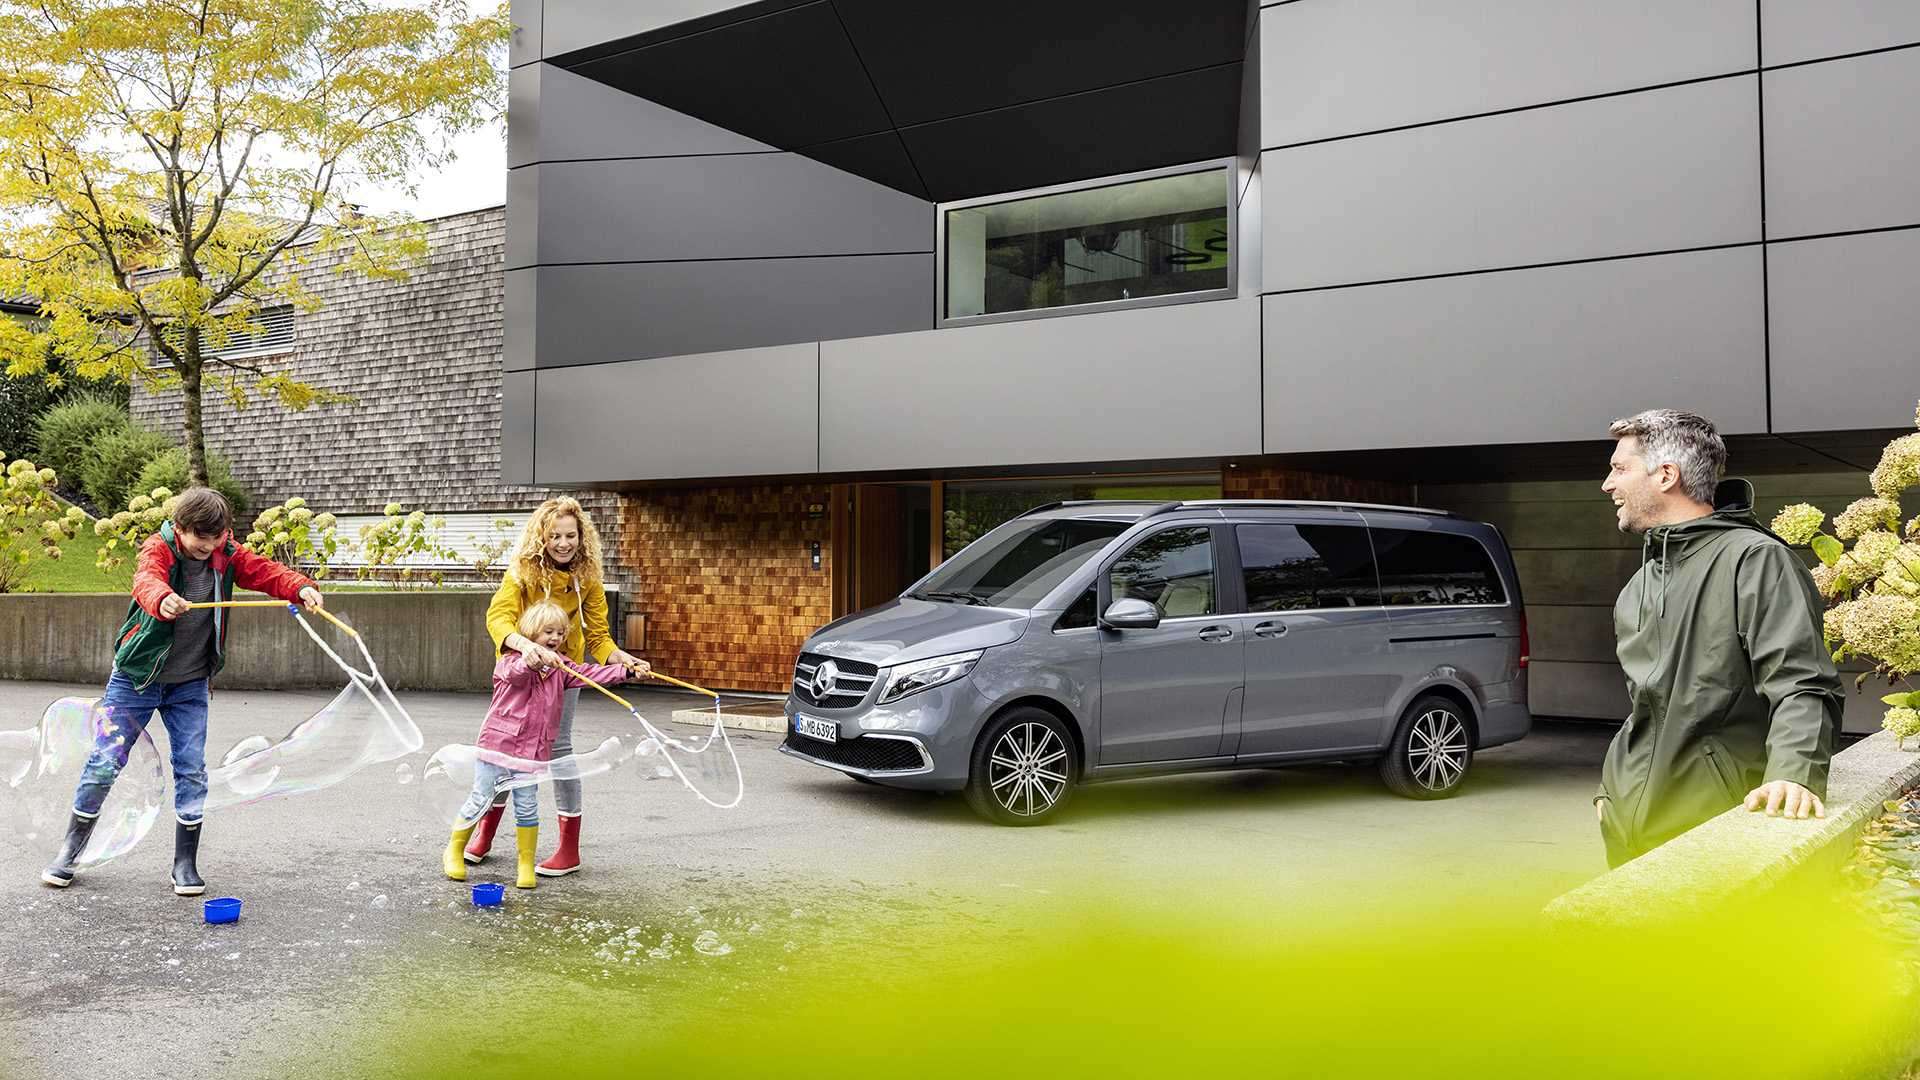 2019 mercedes v class debuts refresh with new engine tech 2019 mercedes v class debuts refresh